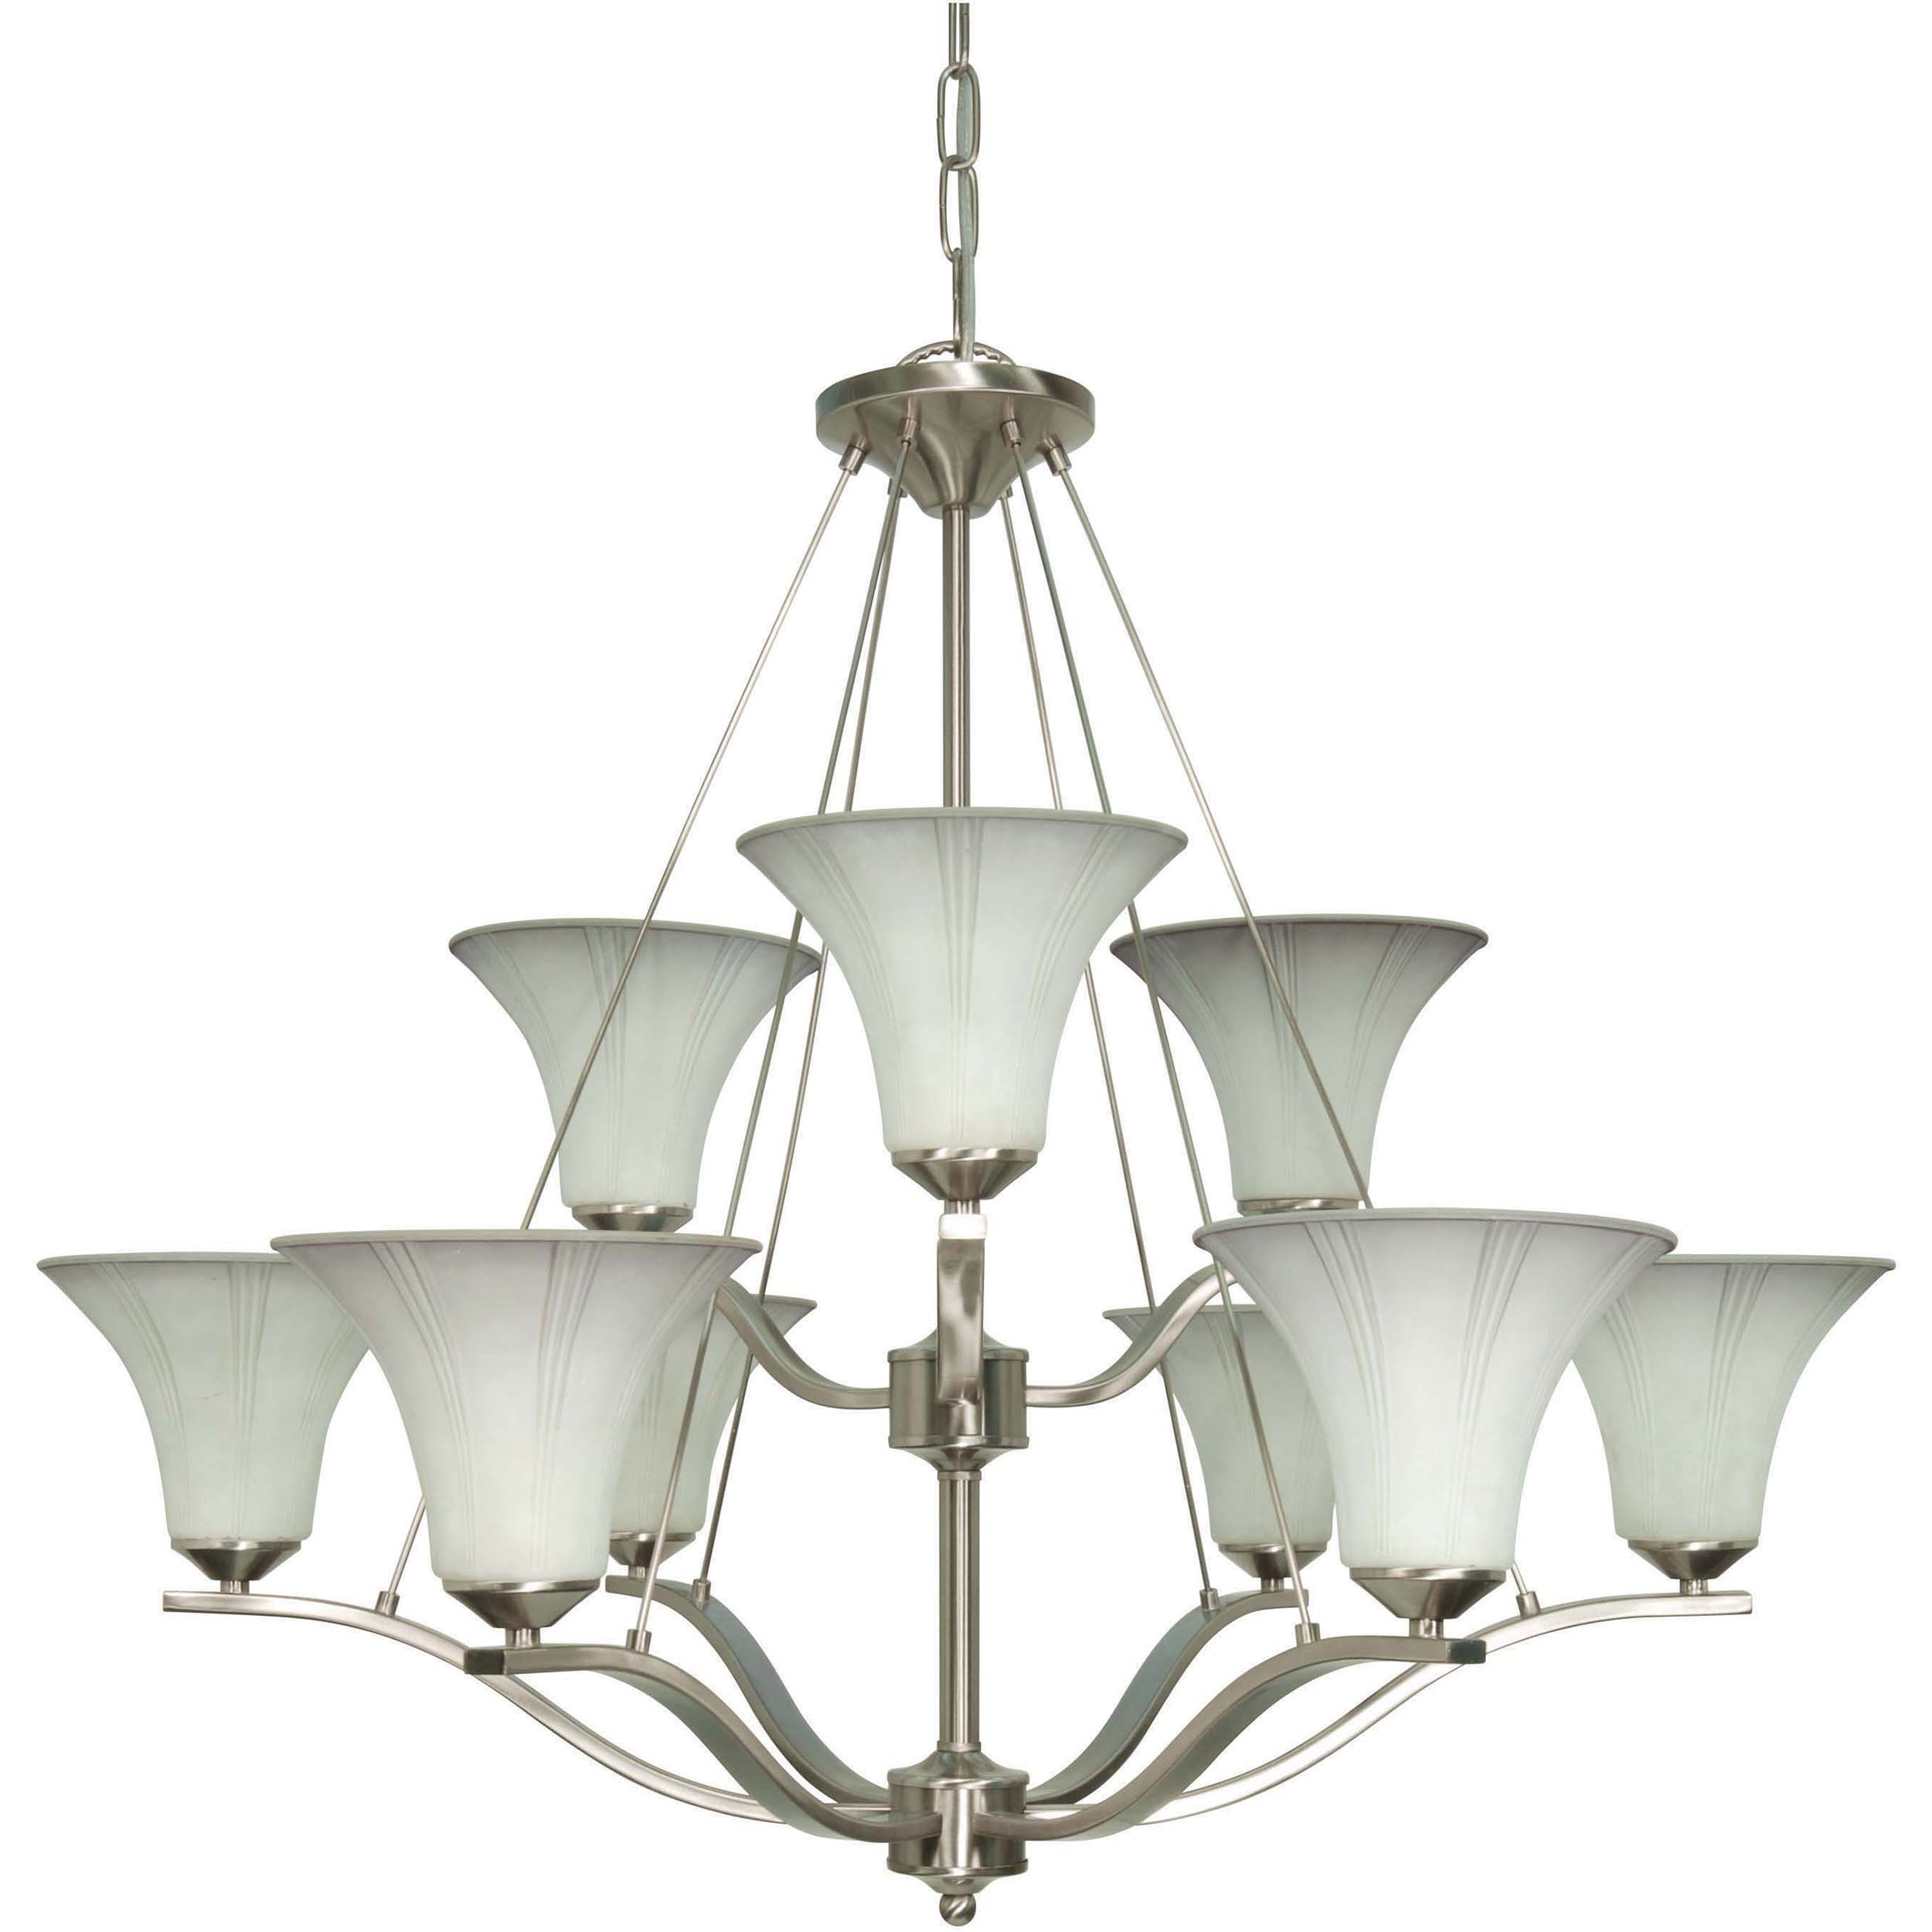 Delano 9 Light Chandelier Brushed Nickel with Grey Suede Glass